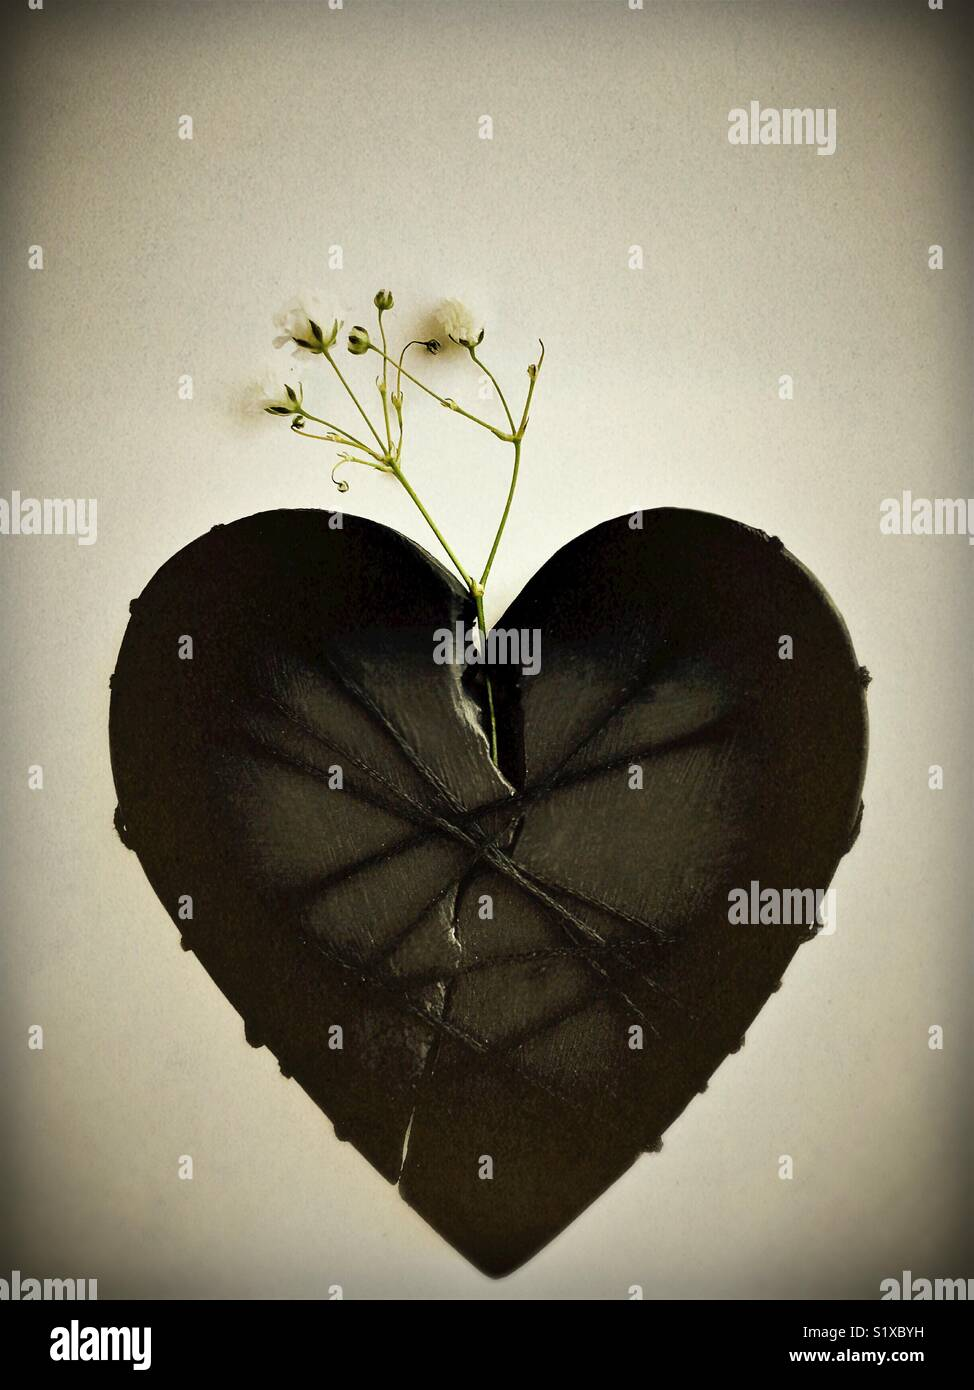 Conceptual: broken heart. - Stock Image